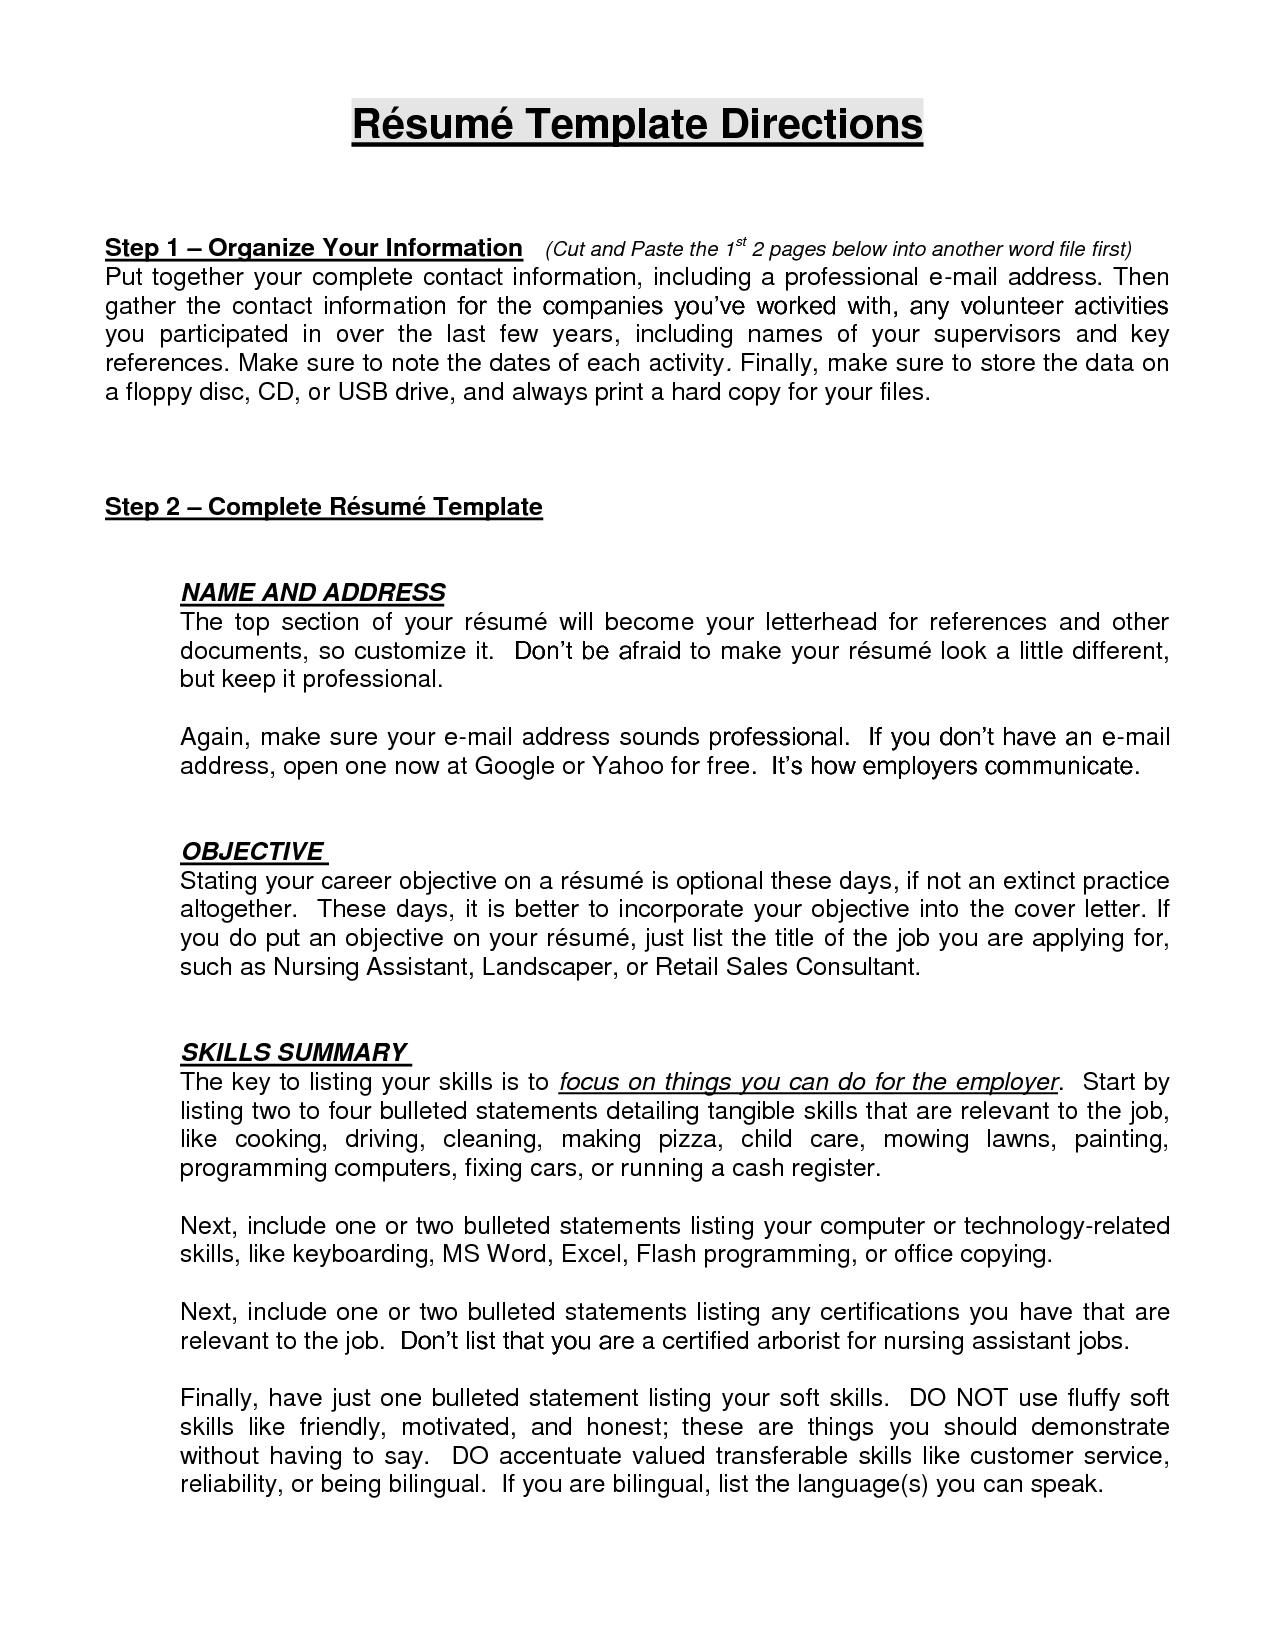 An Objective For A Resume Resume Objective Statements Ideas  Httpwwwjobresumewebsite